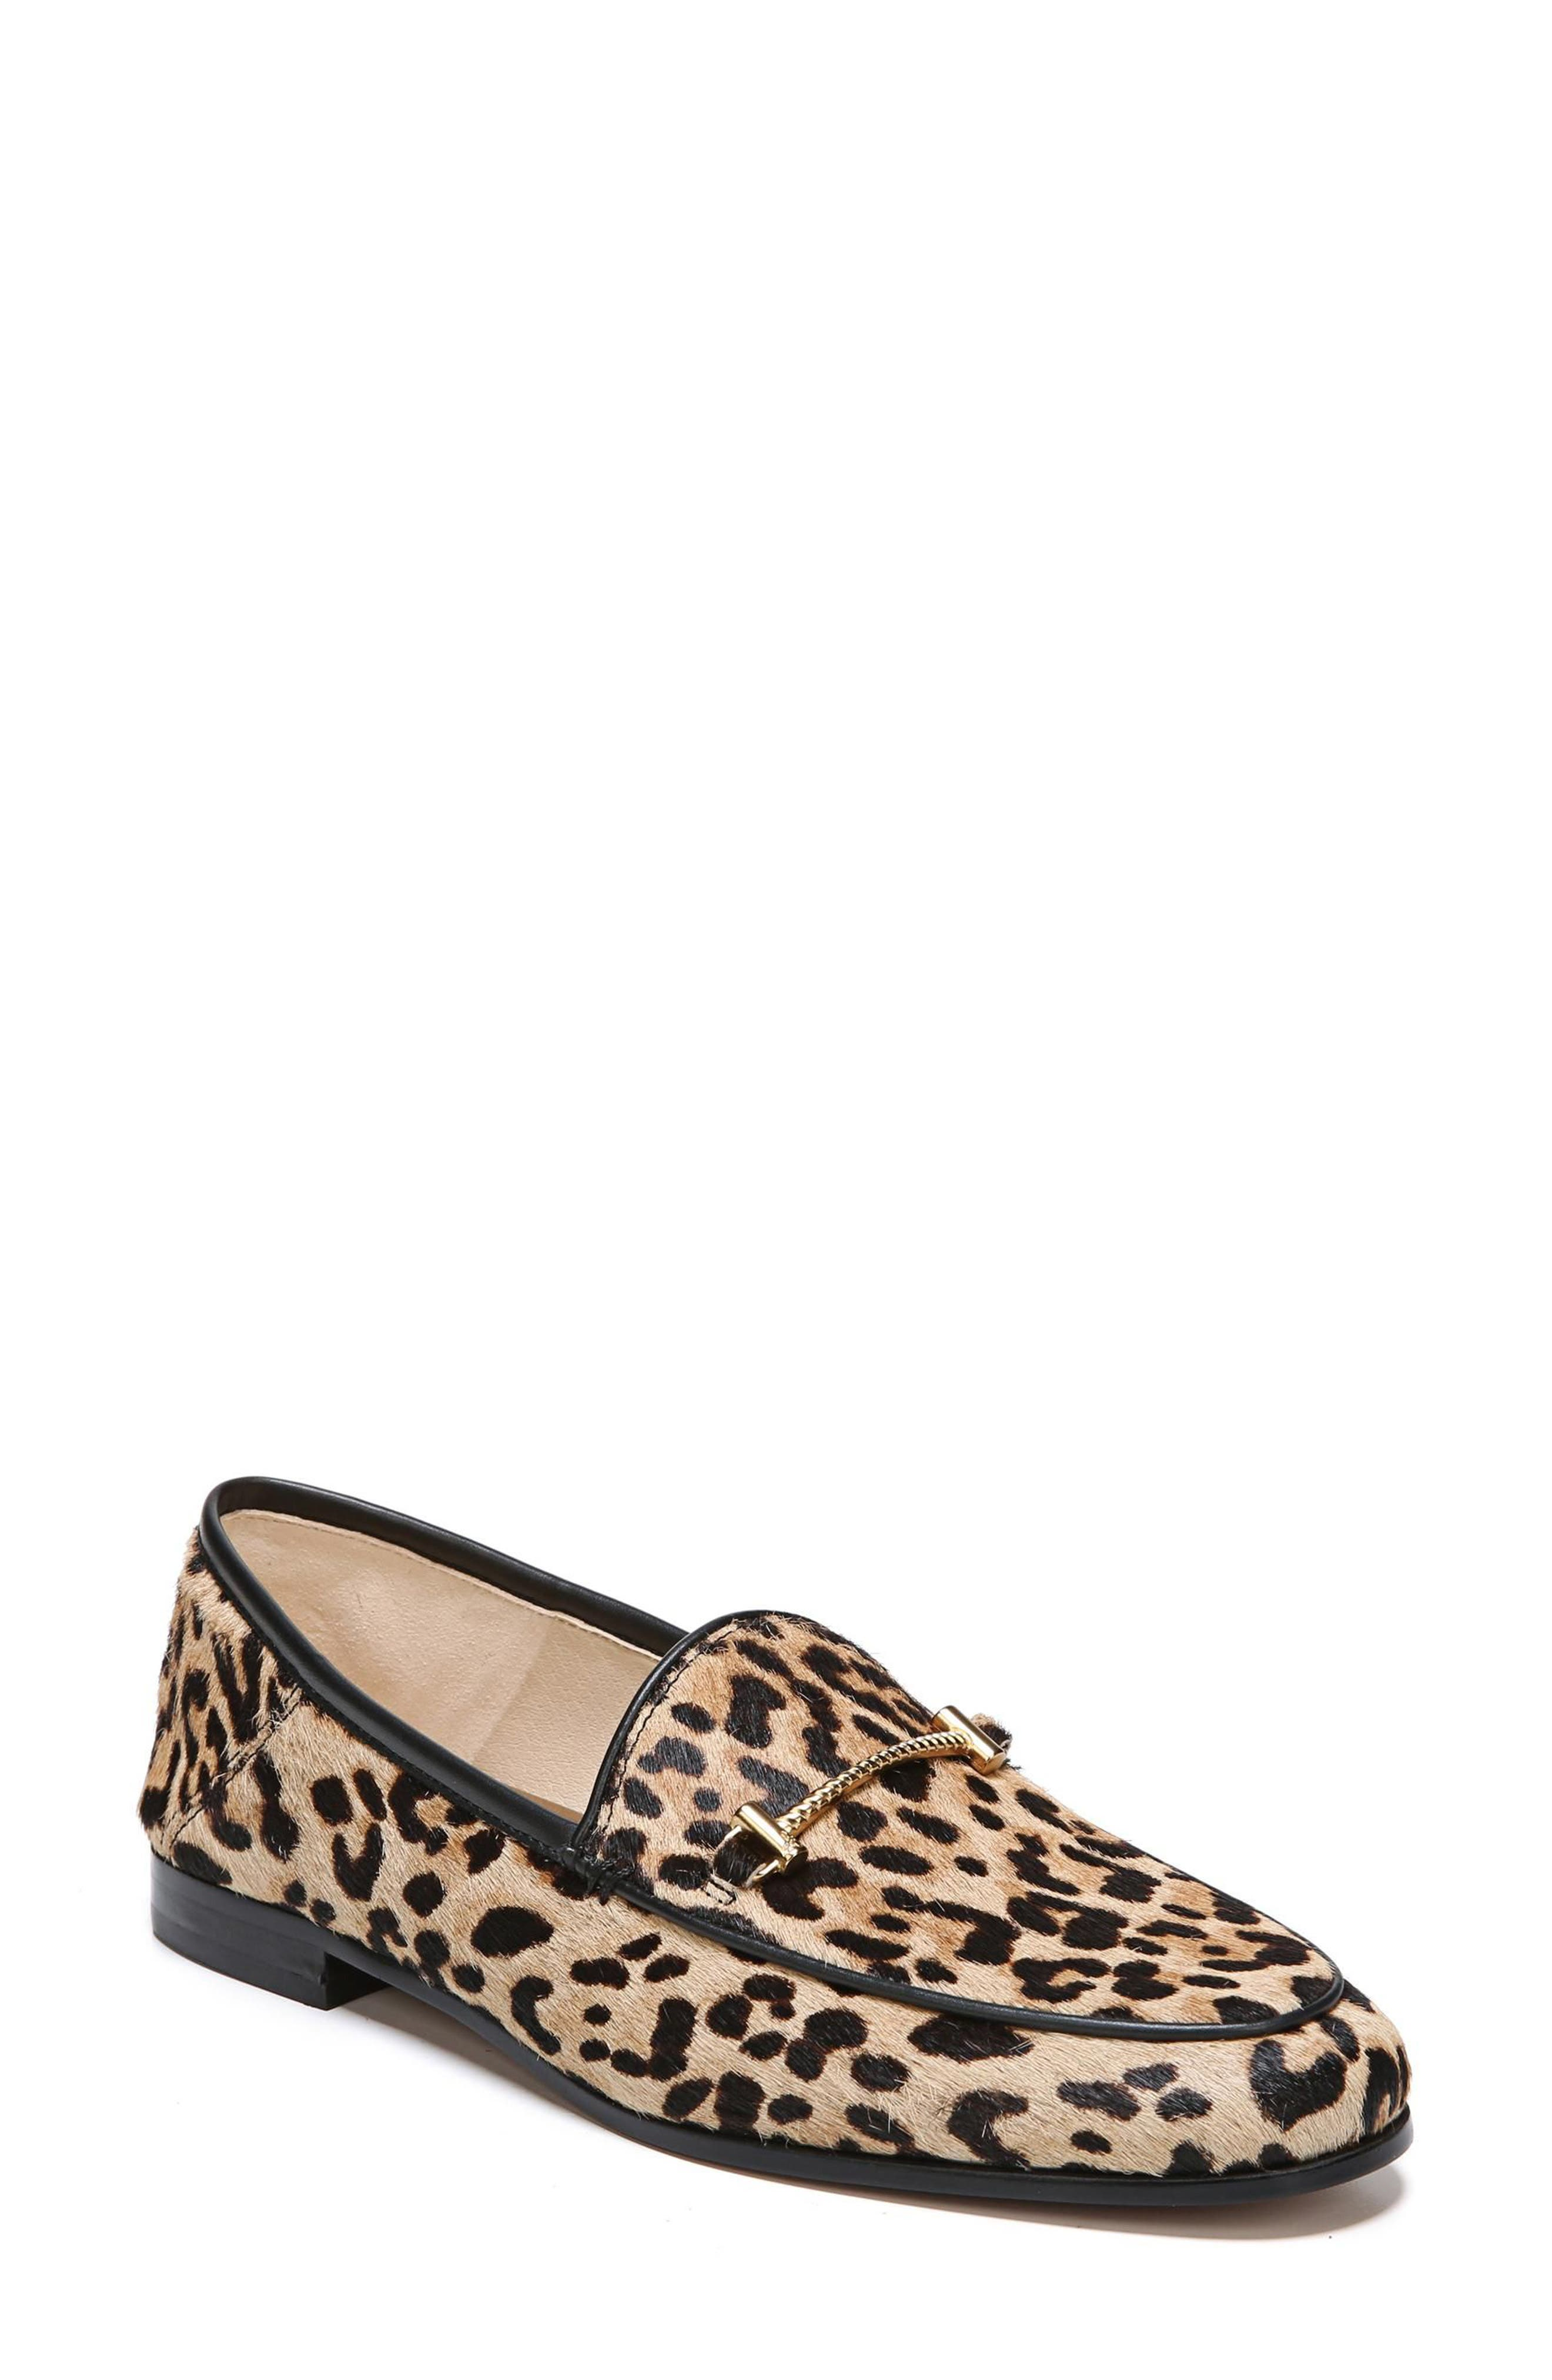 Lior Loafer,                         Main,                         color, Sand Leopard Calf Hair